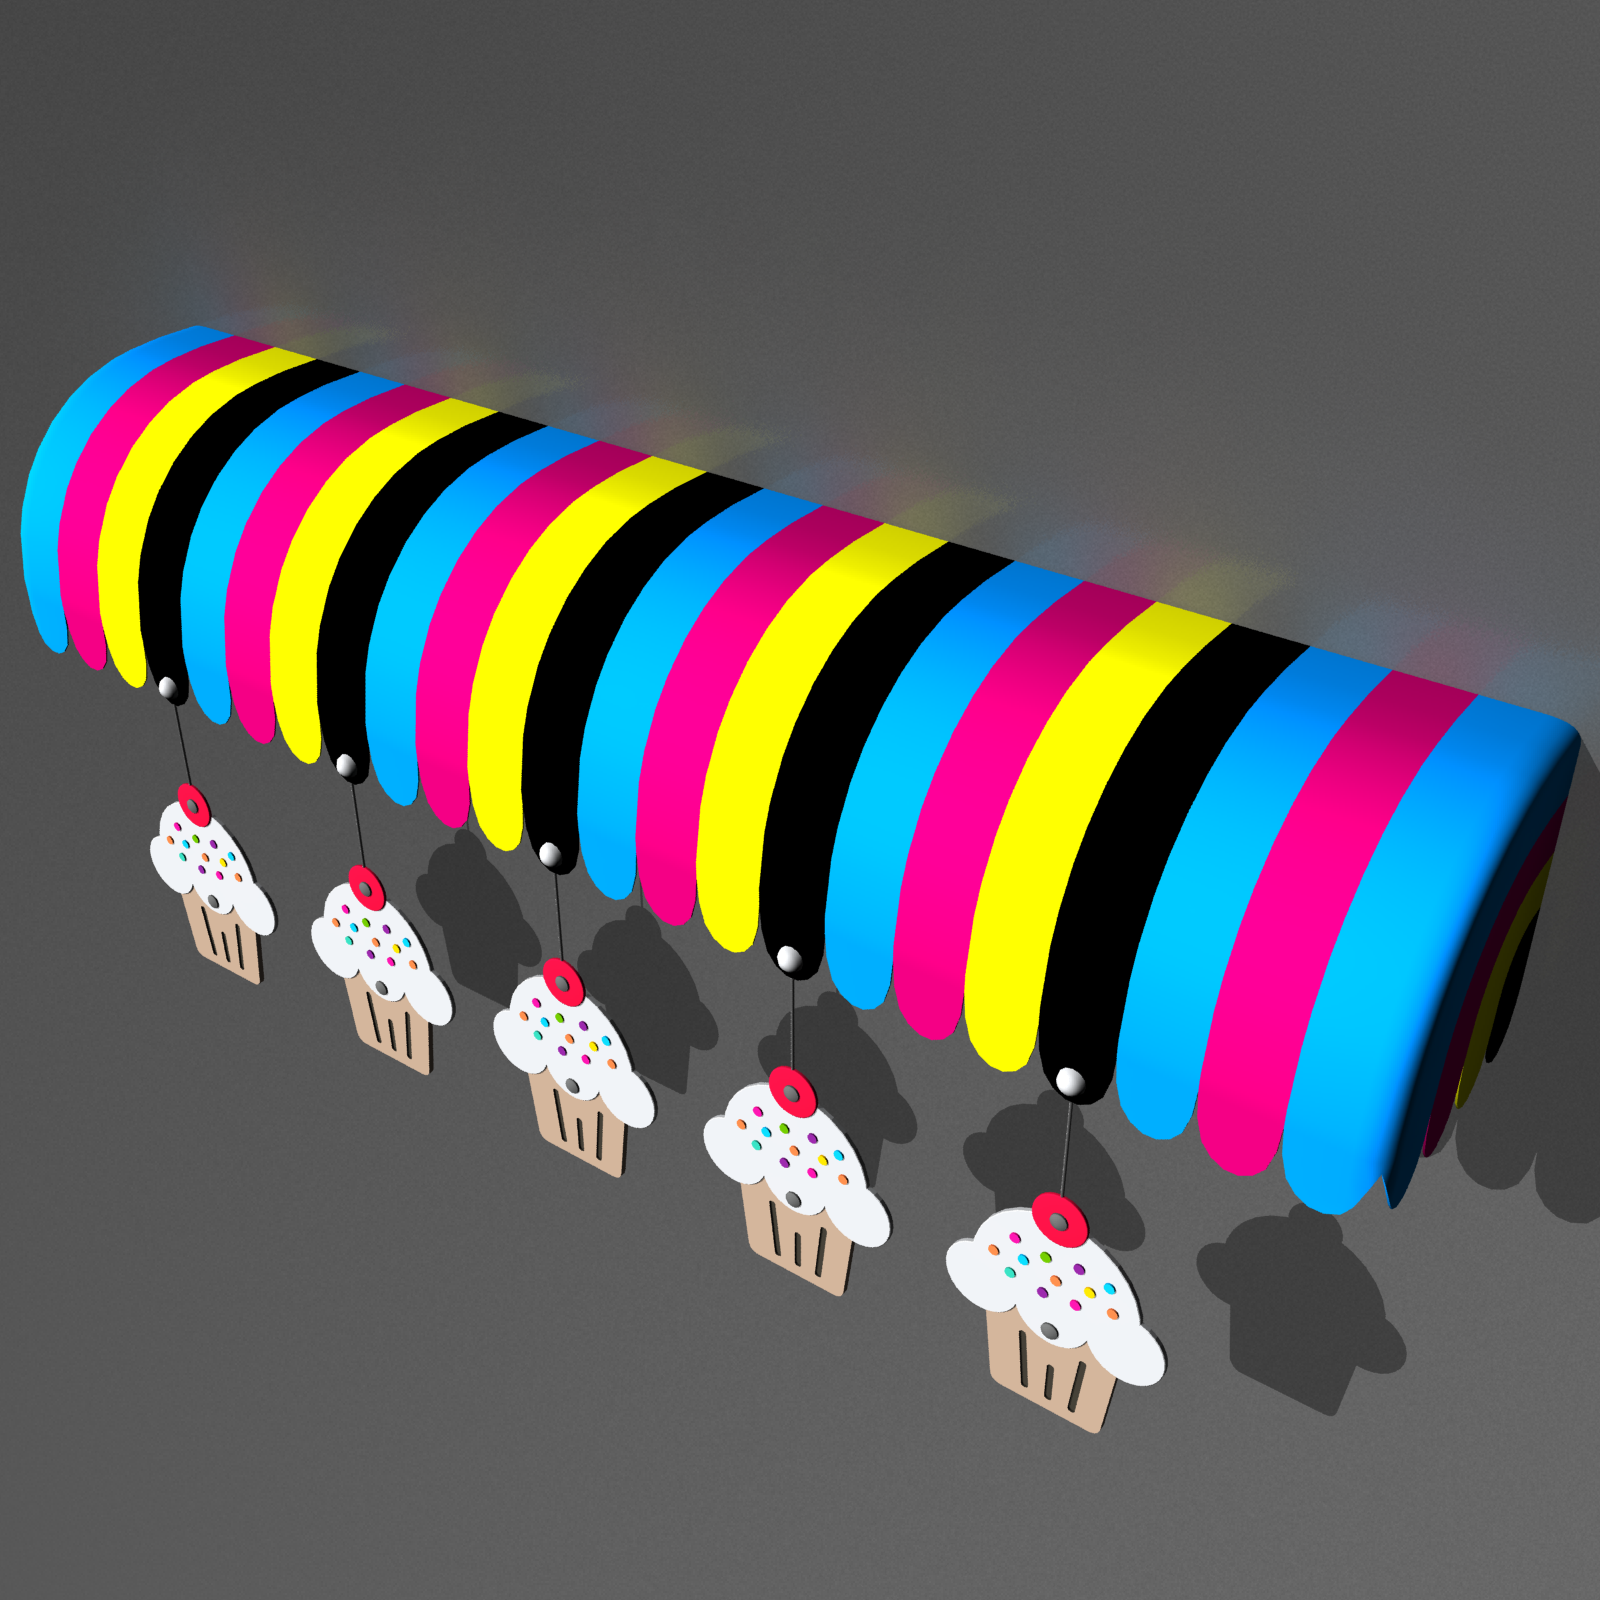 Awning 3d Model 01 Abstract Design 3d Model Abstract